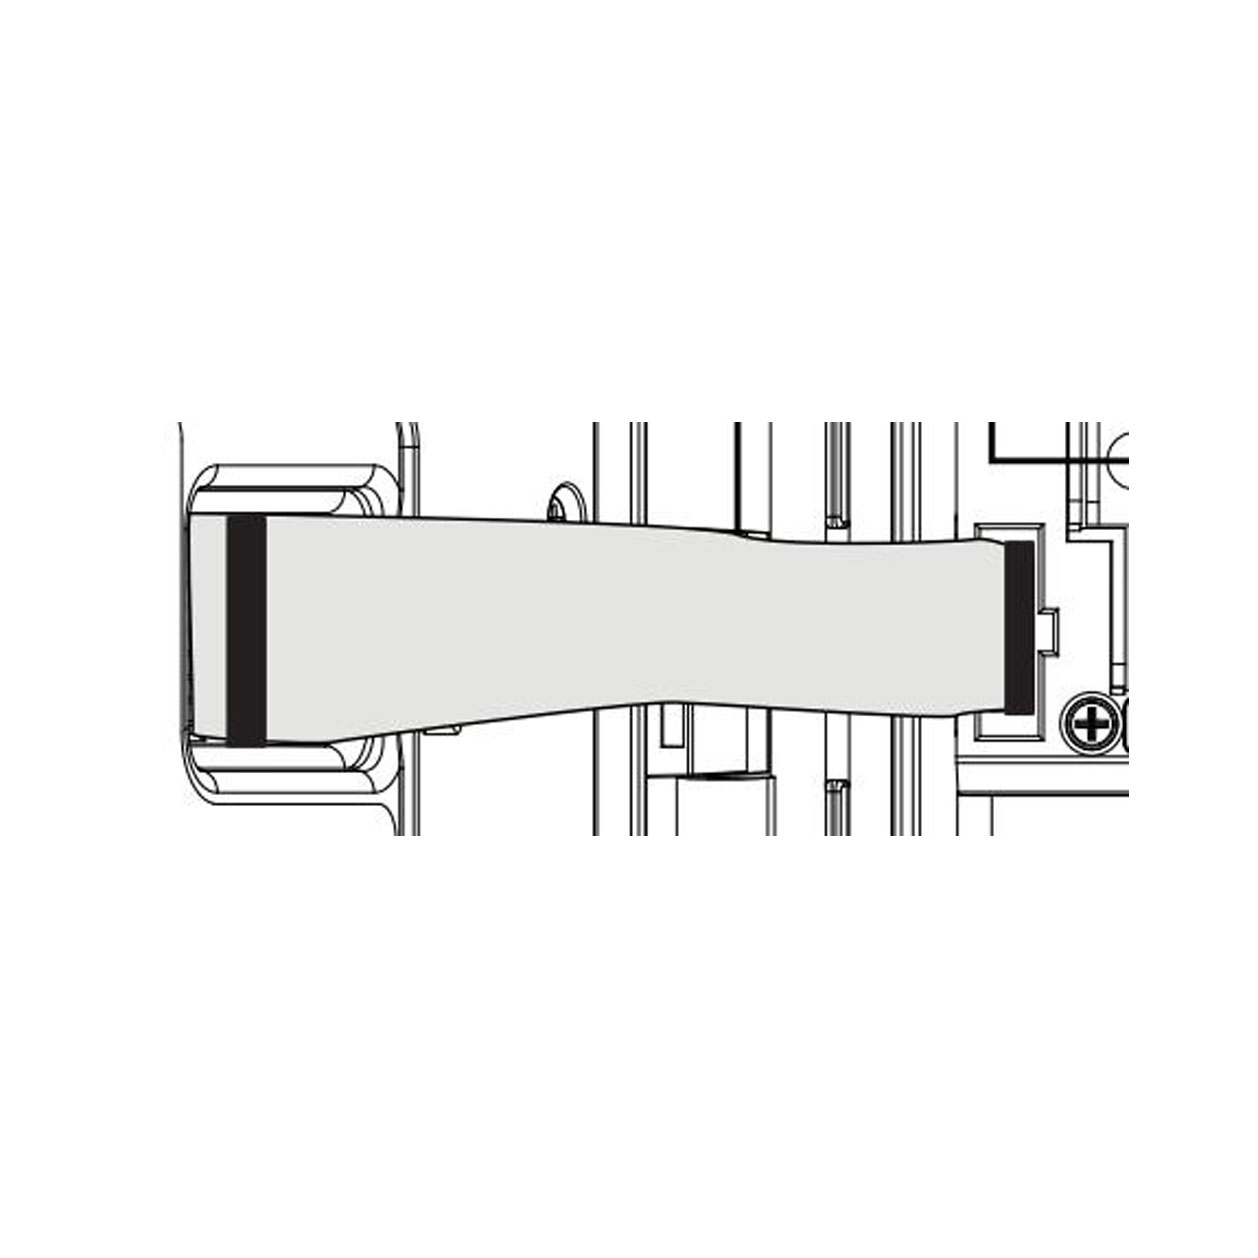 I-Core Commercial Sprinkler Controller Plastic Cabinet Ribbon Cable